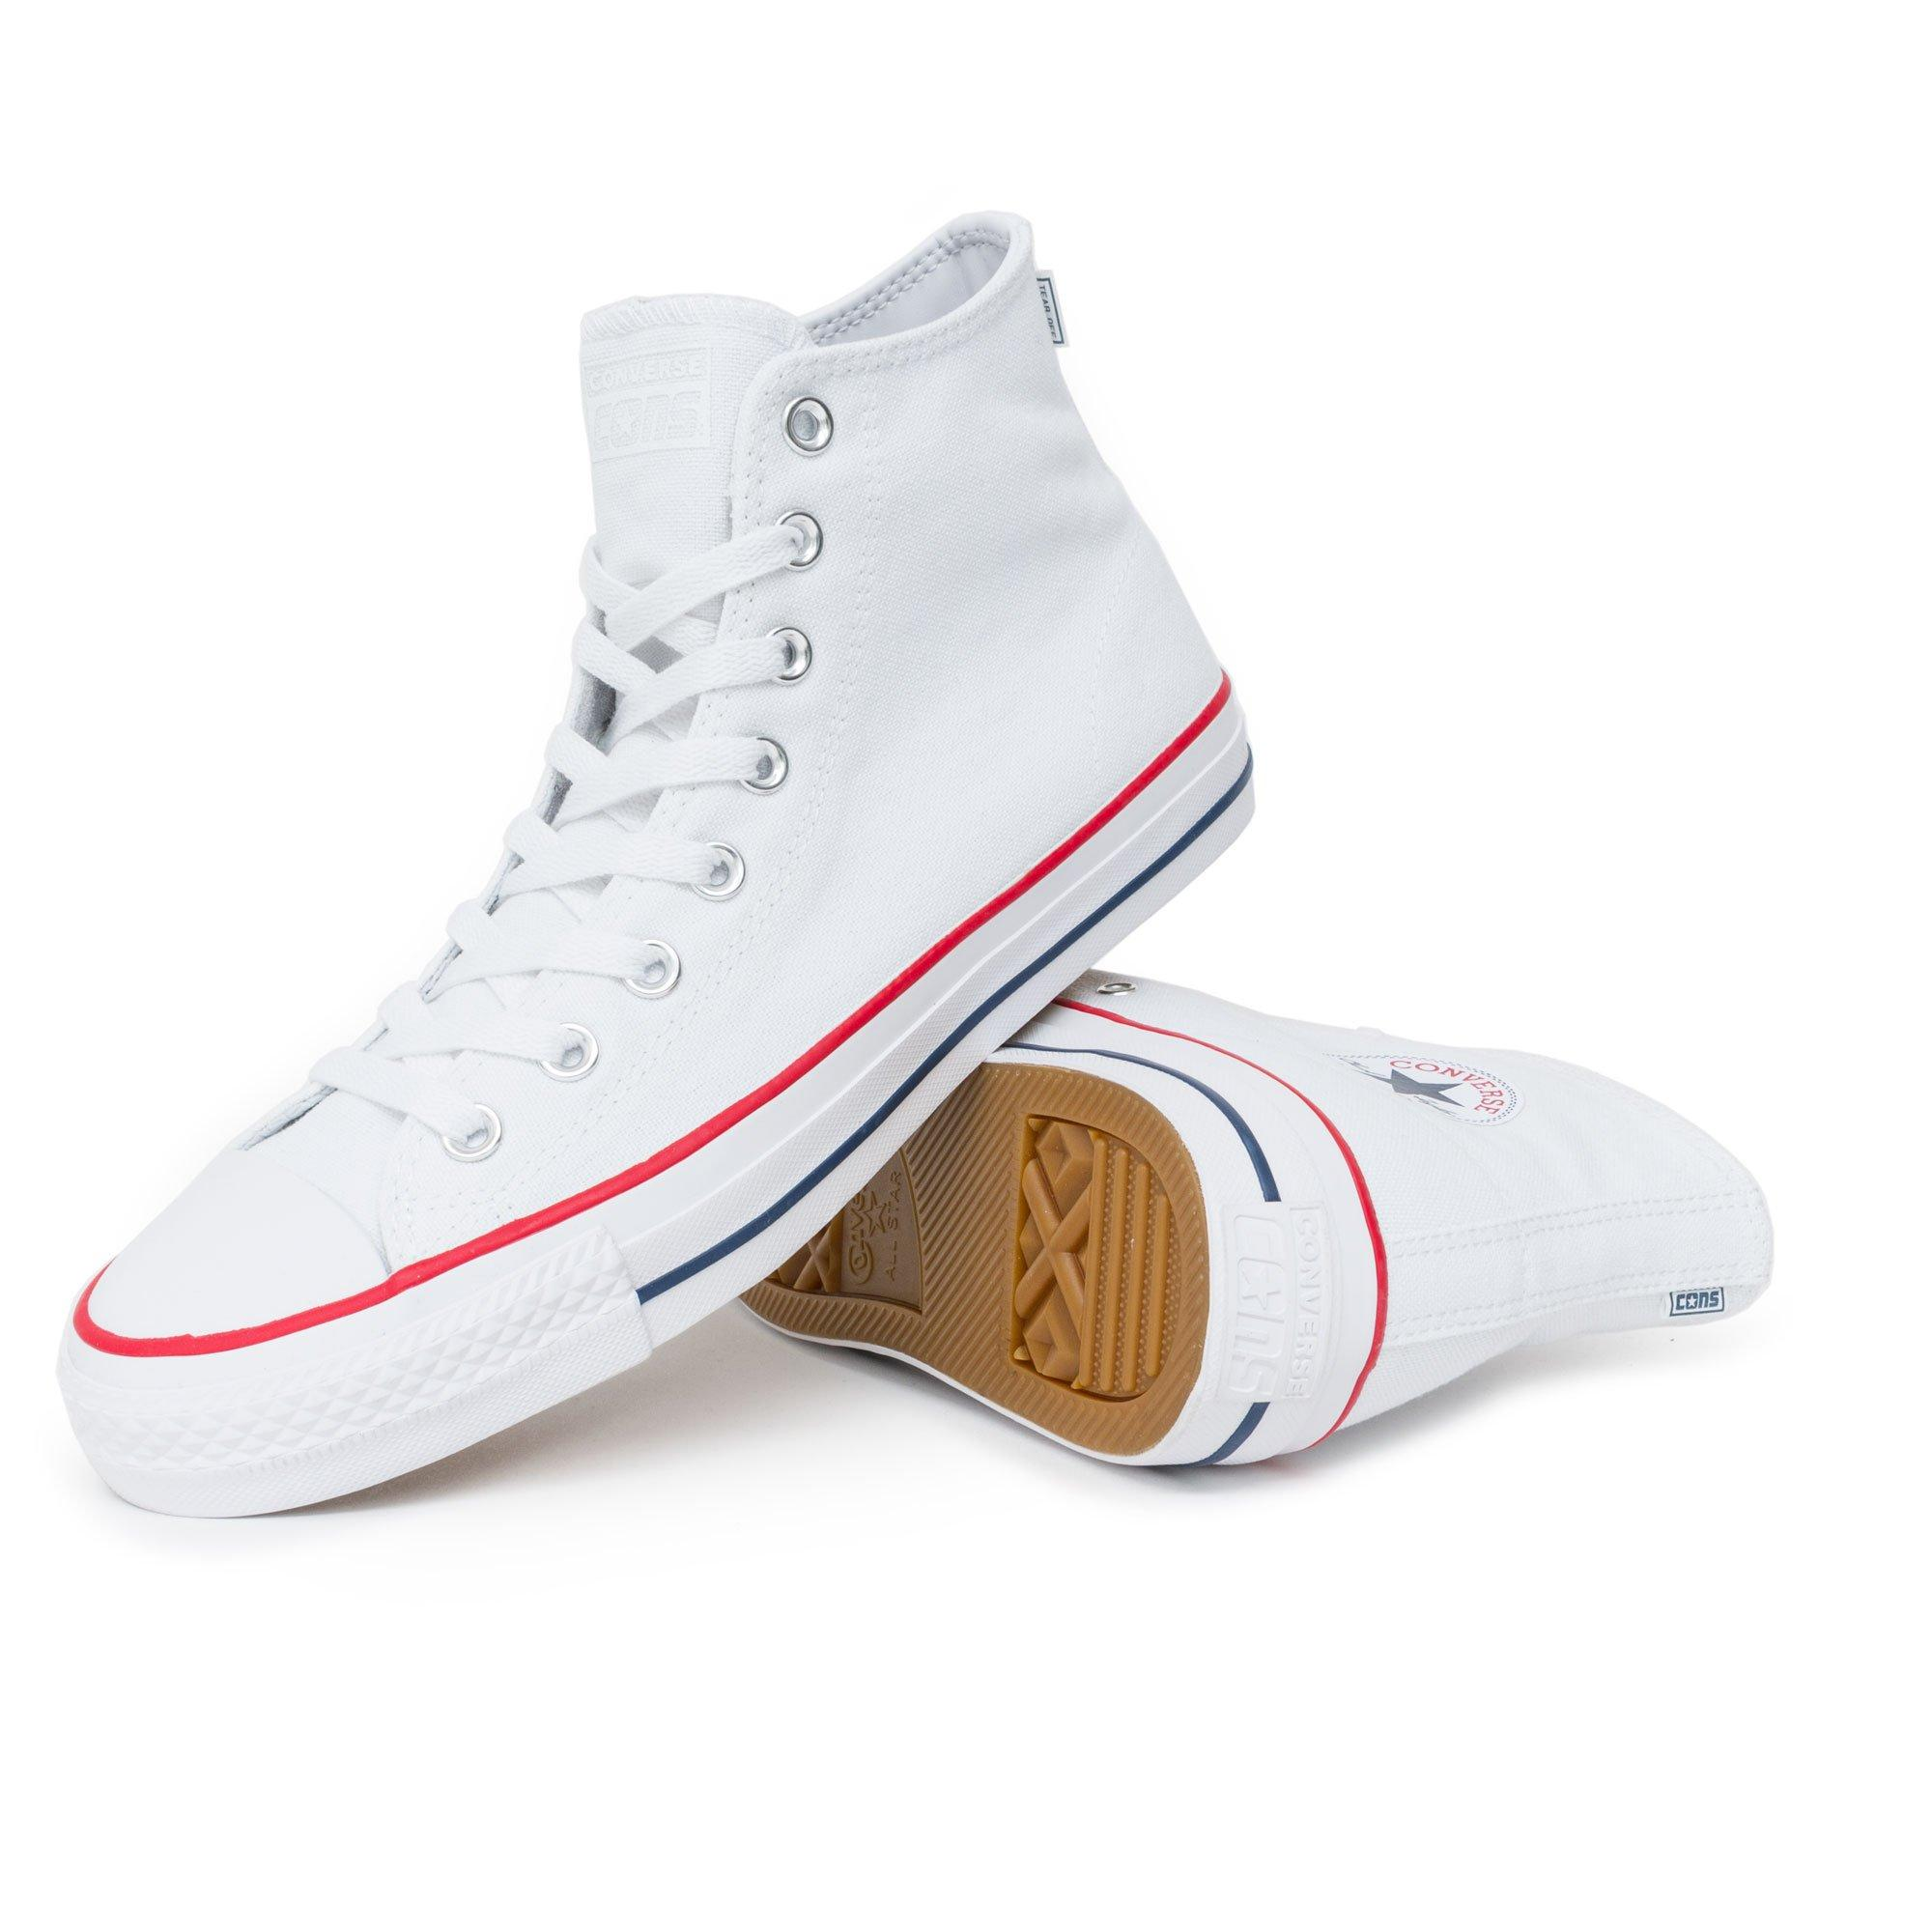 fbf81cc2b2fff9 Lyst - Converse Chuck Taylor All Star Pro High Shoes in White for Men